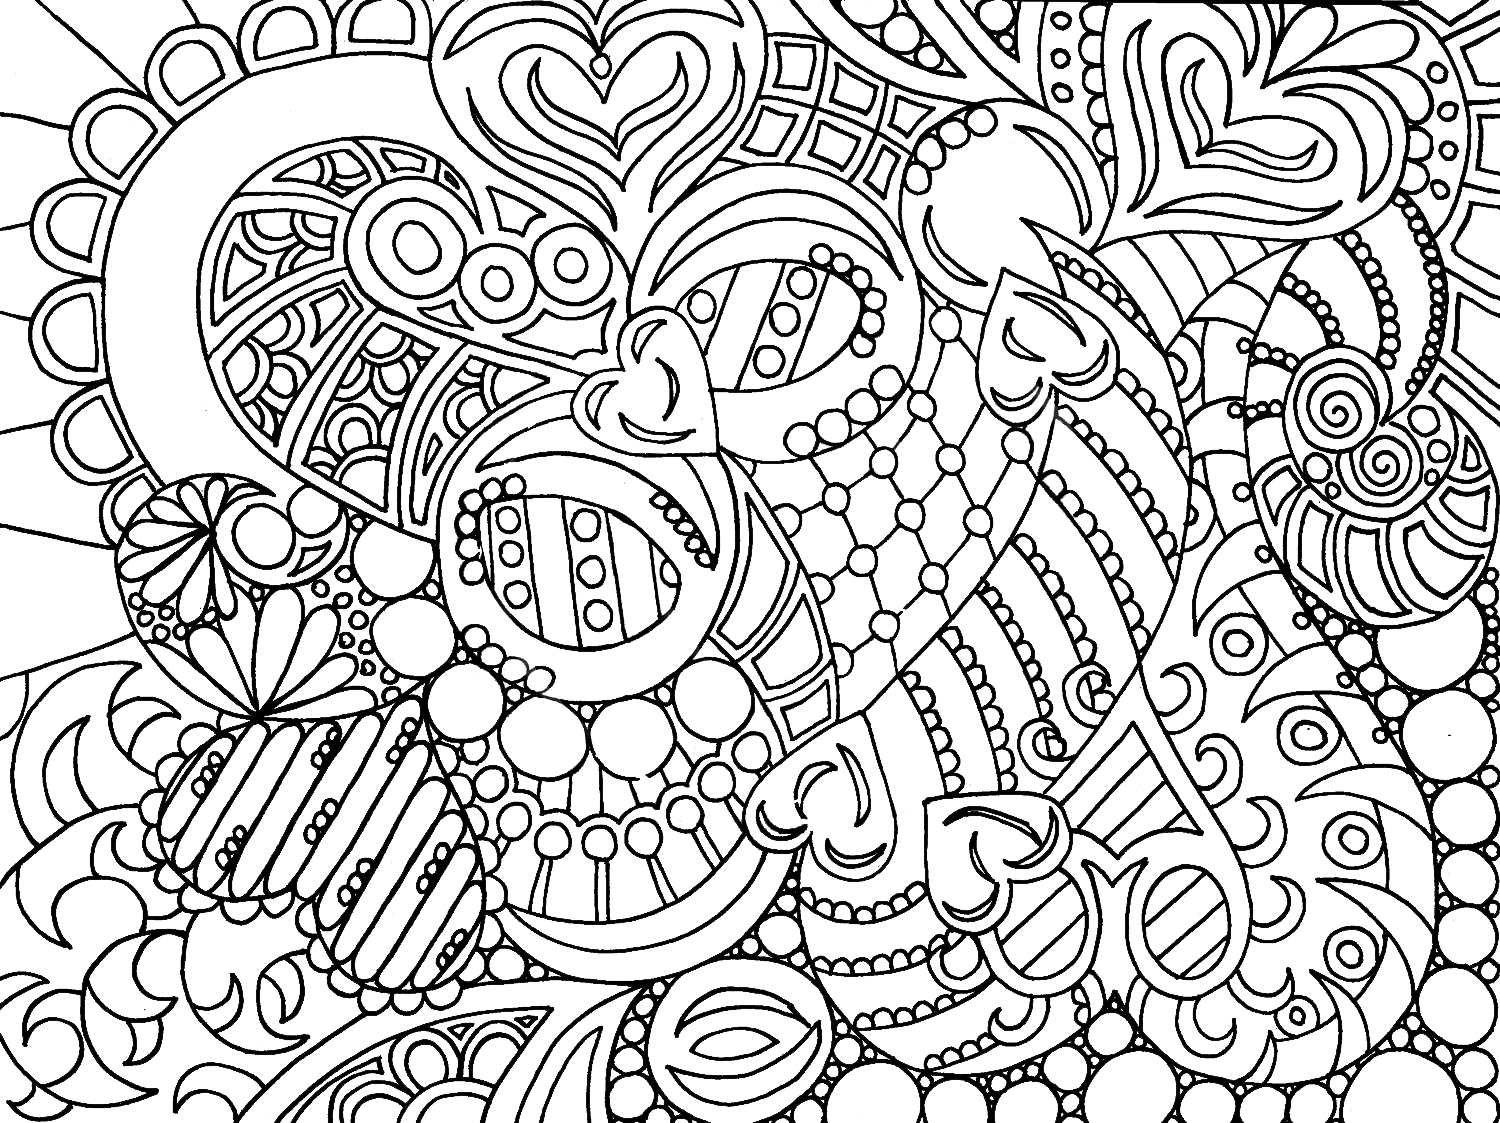 advanced music coloring pages - photo#8